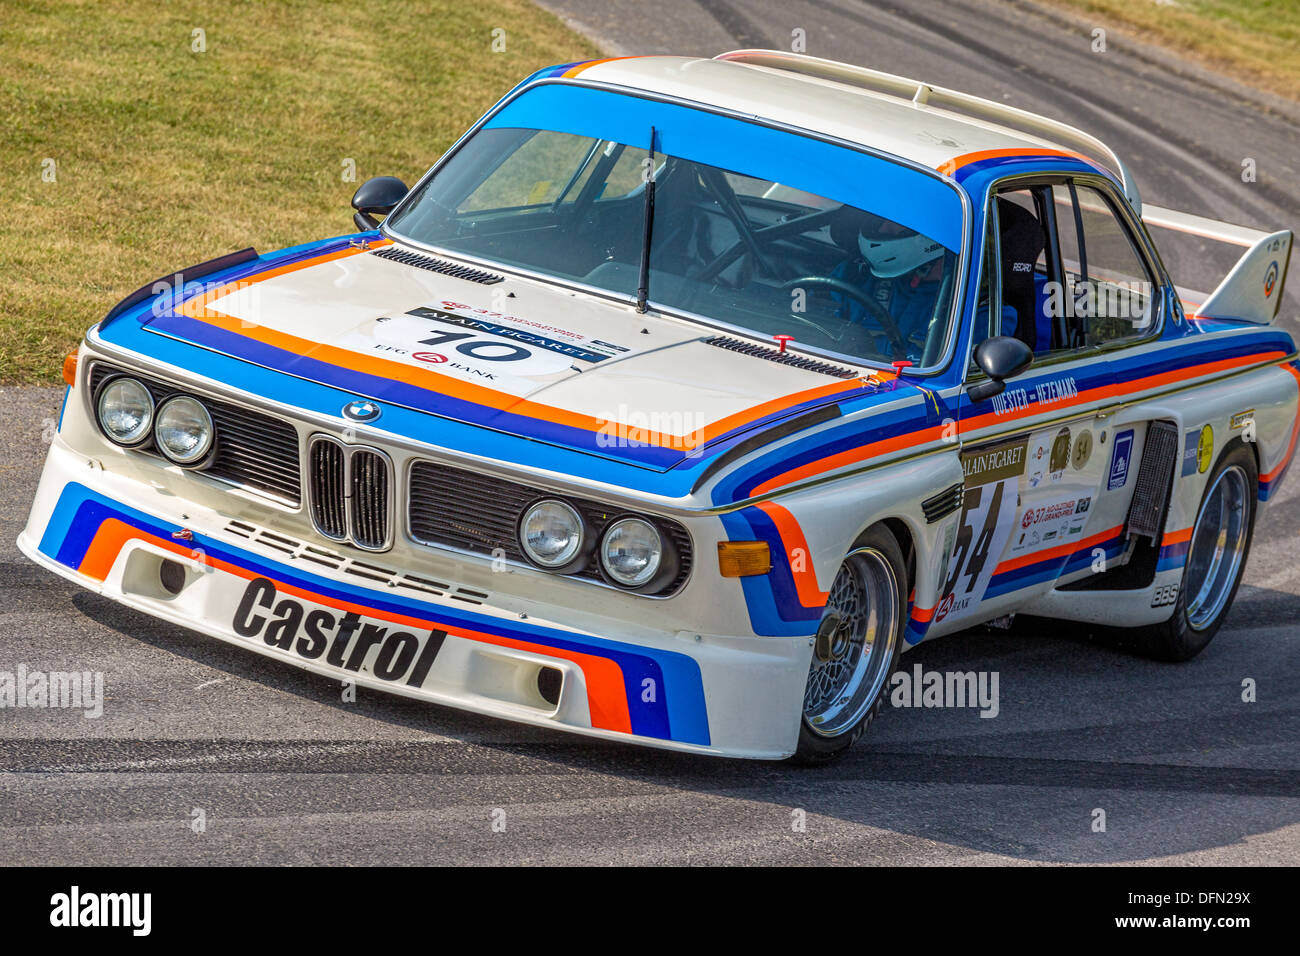 1975 Bmw 3 0 Csl Batmobile With Driver Alex Elliott At The 2013 Stock Photo Royalty Free